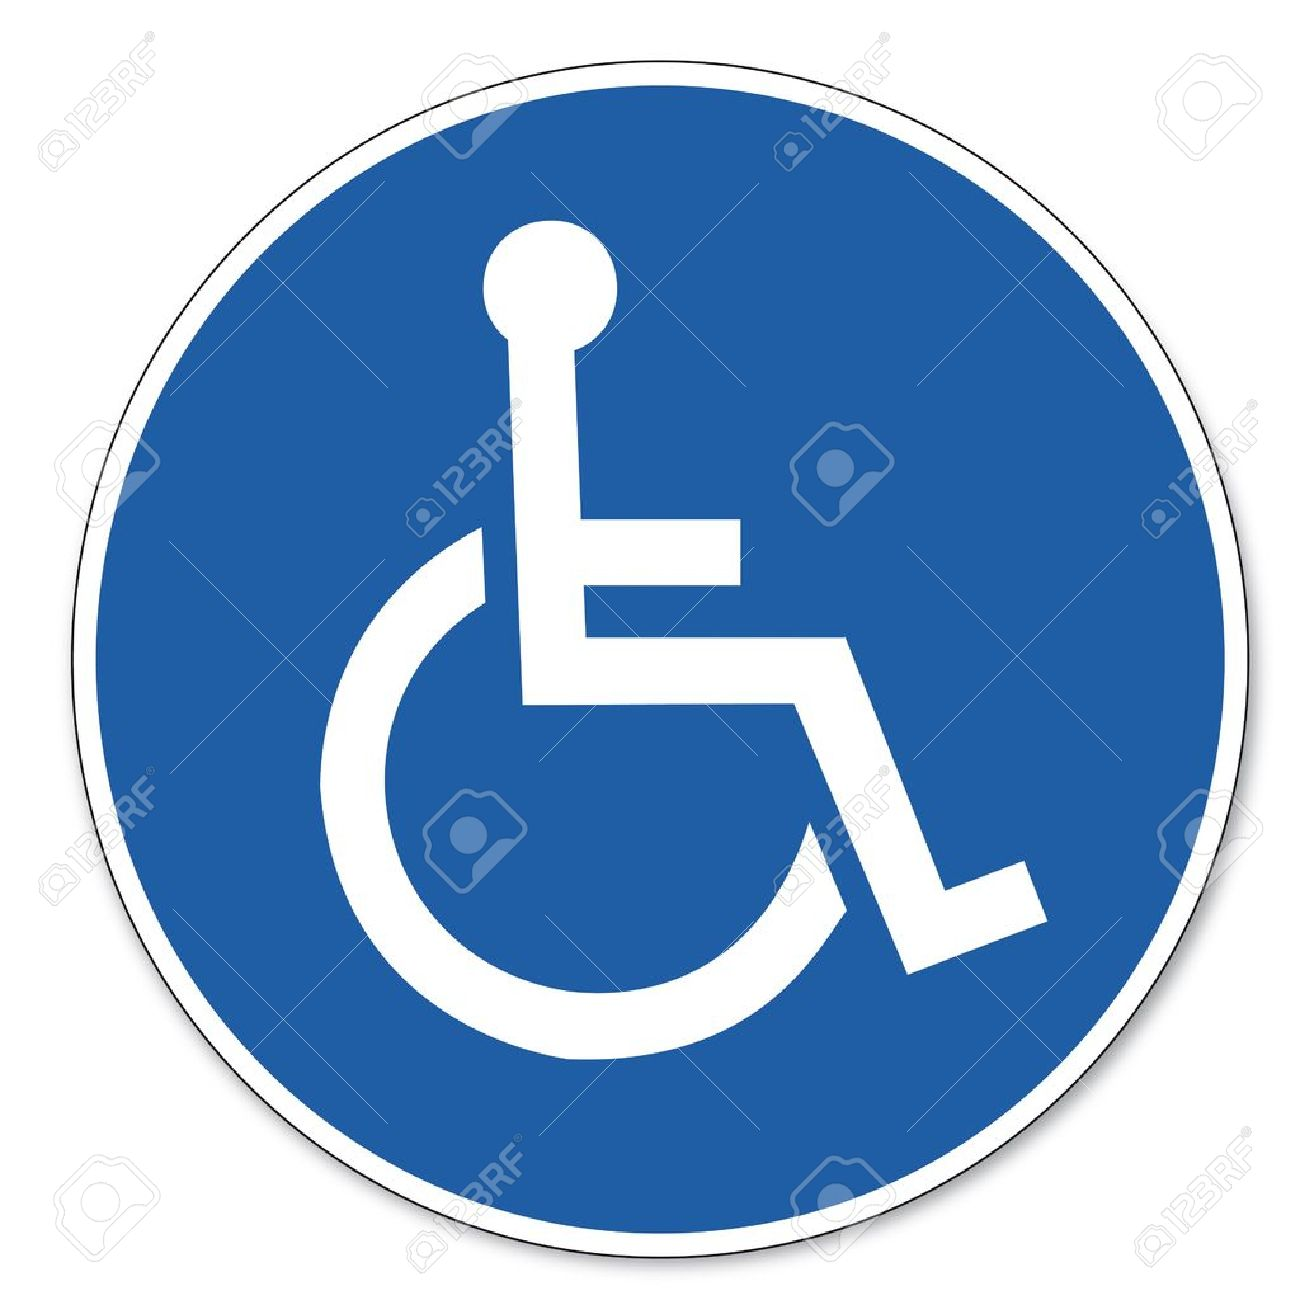 Commanded sign safety sign pictogram occupational safety sign for Wheelchairs users - 14650095